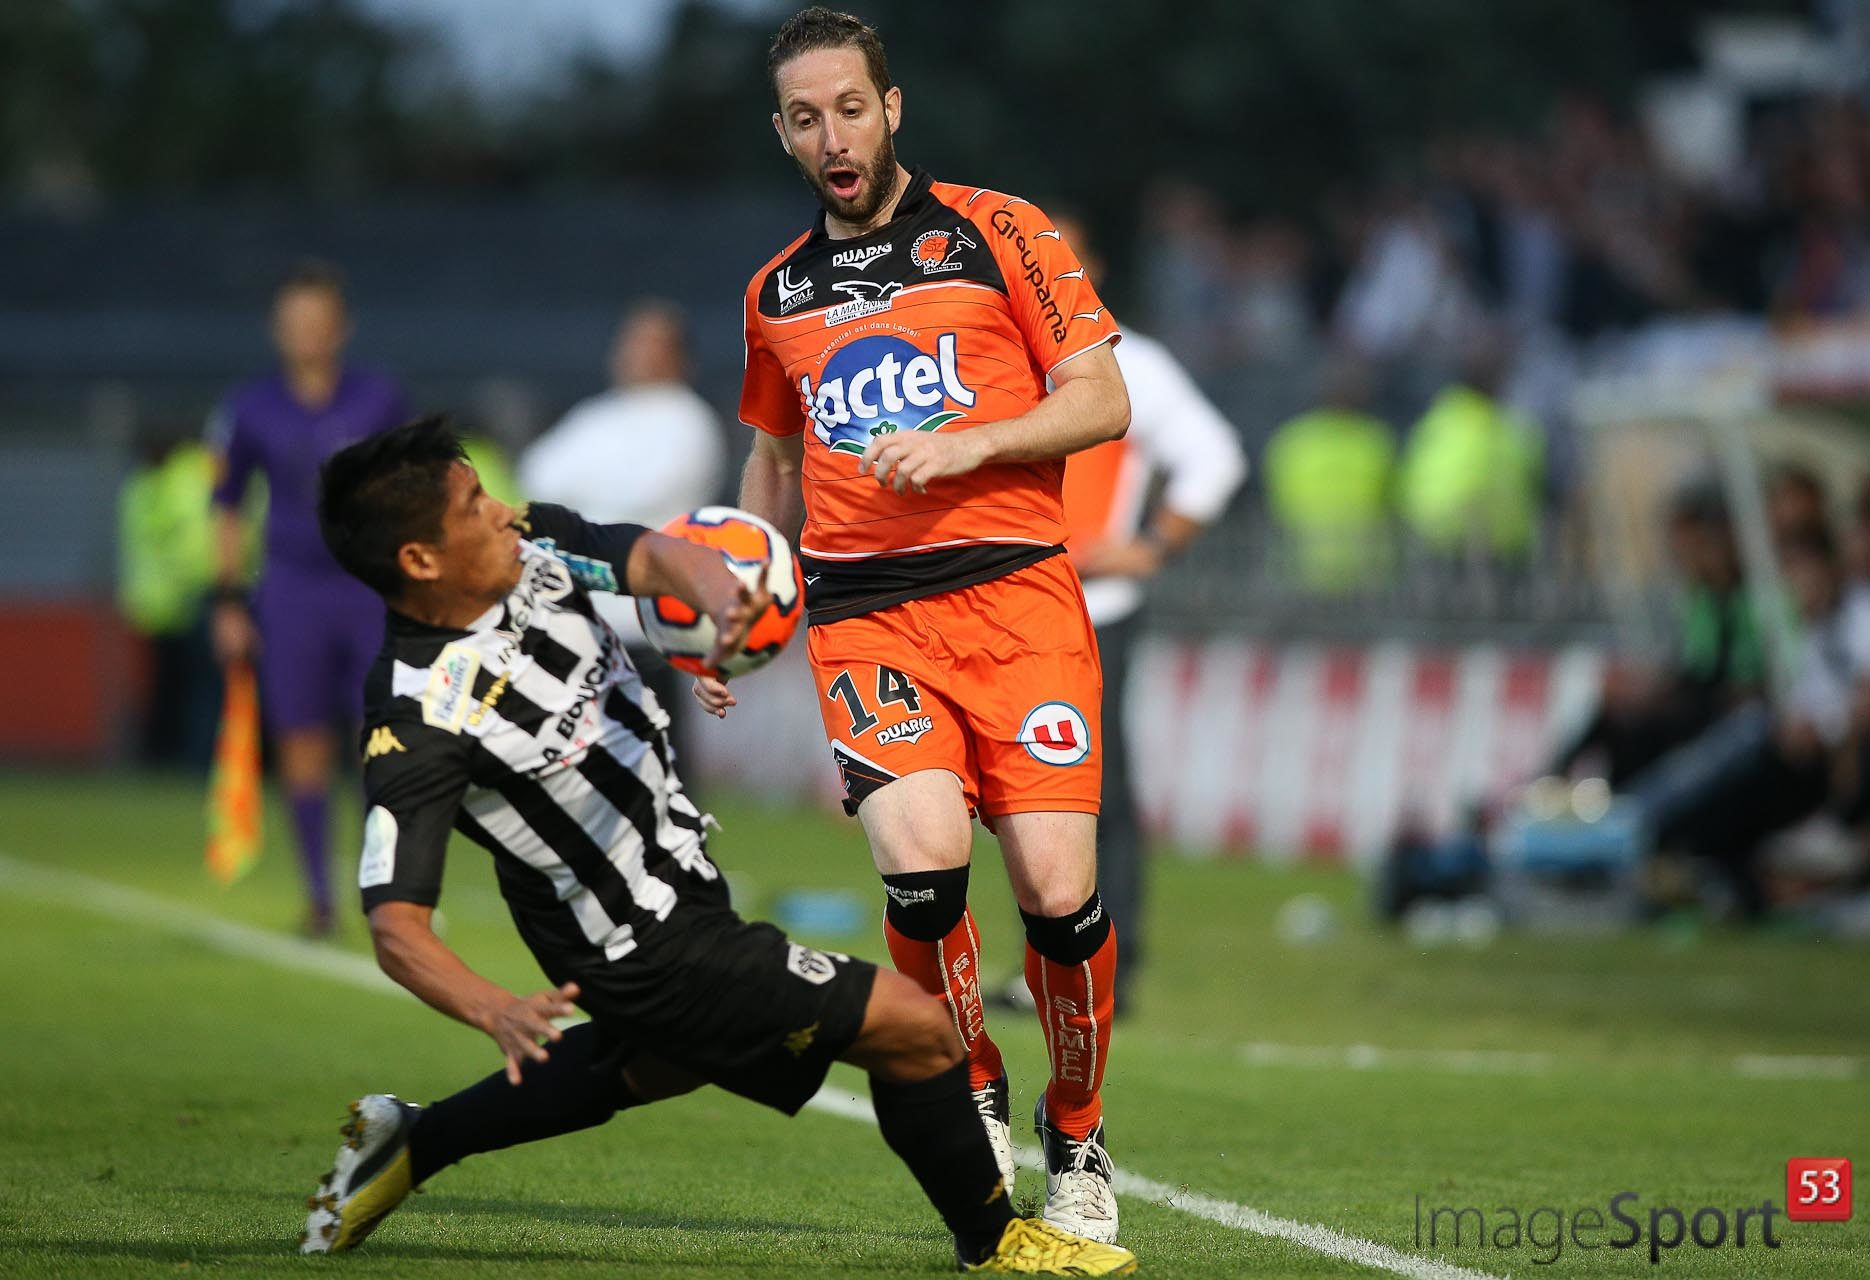 NG_1314_Ligue2_J06_Laval-Angers_3